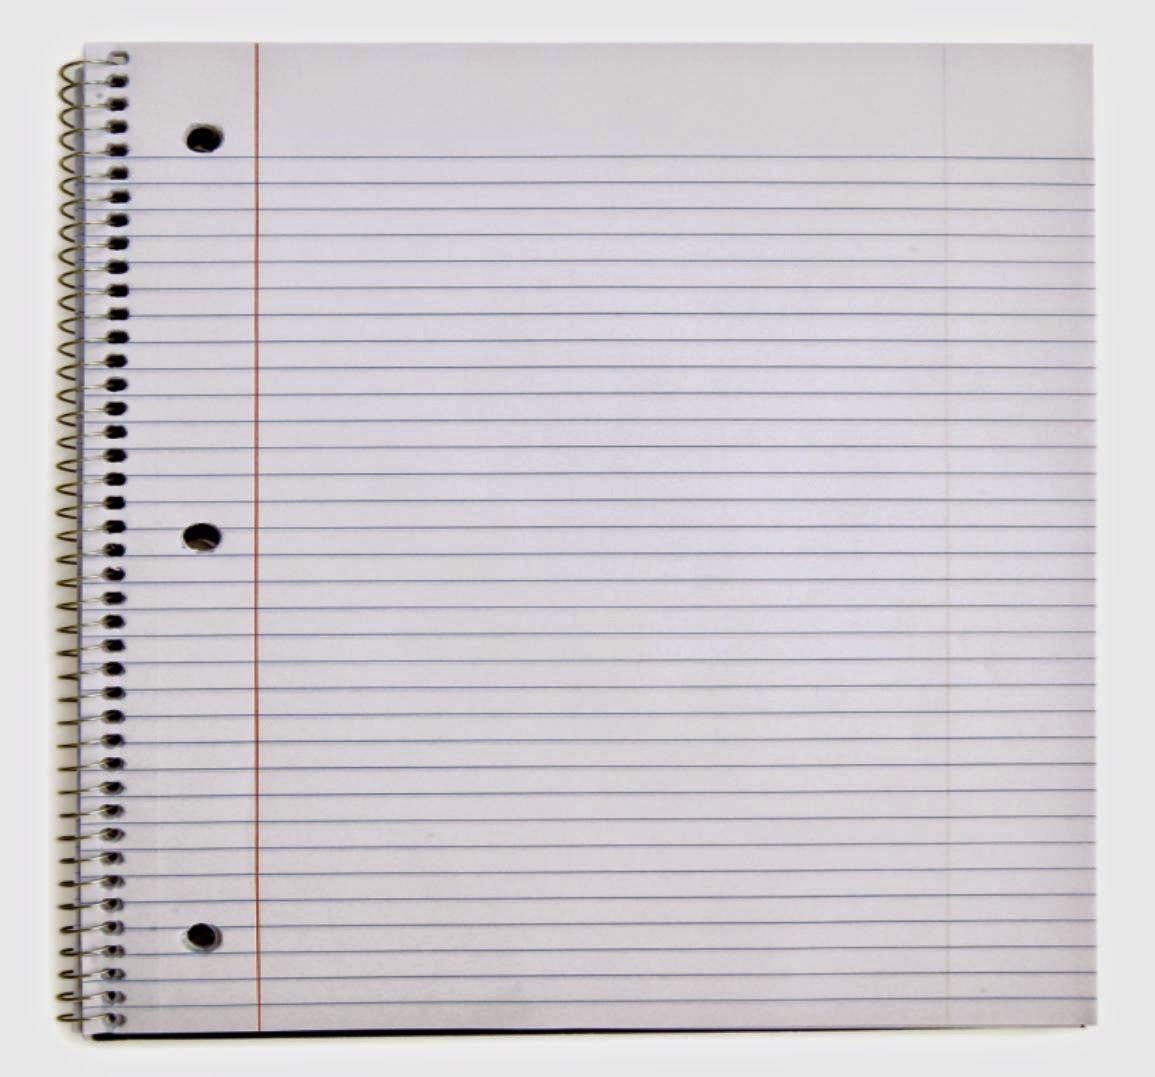 It is a photo of Notebook Paper Printable in wide ruled